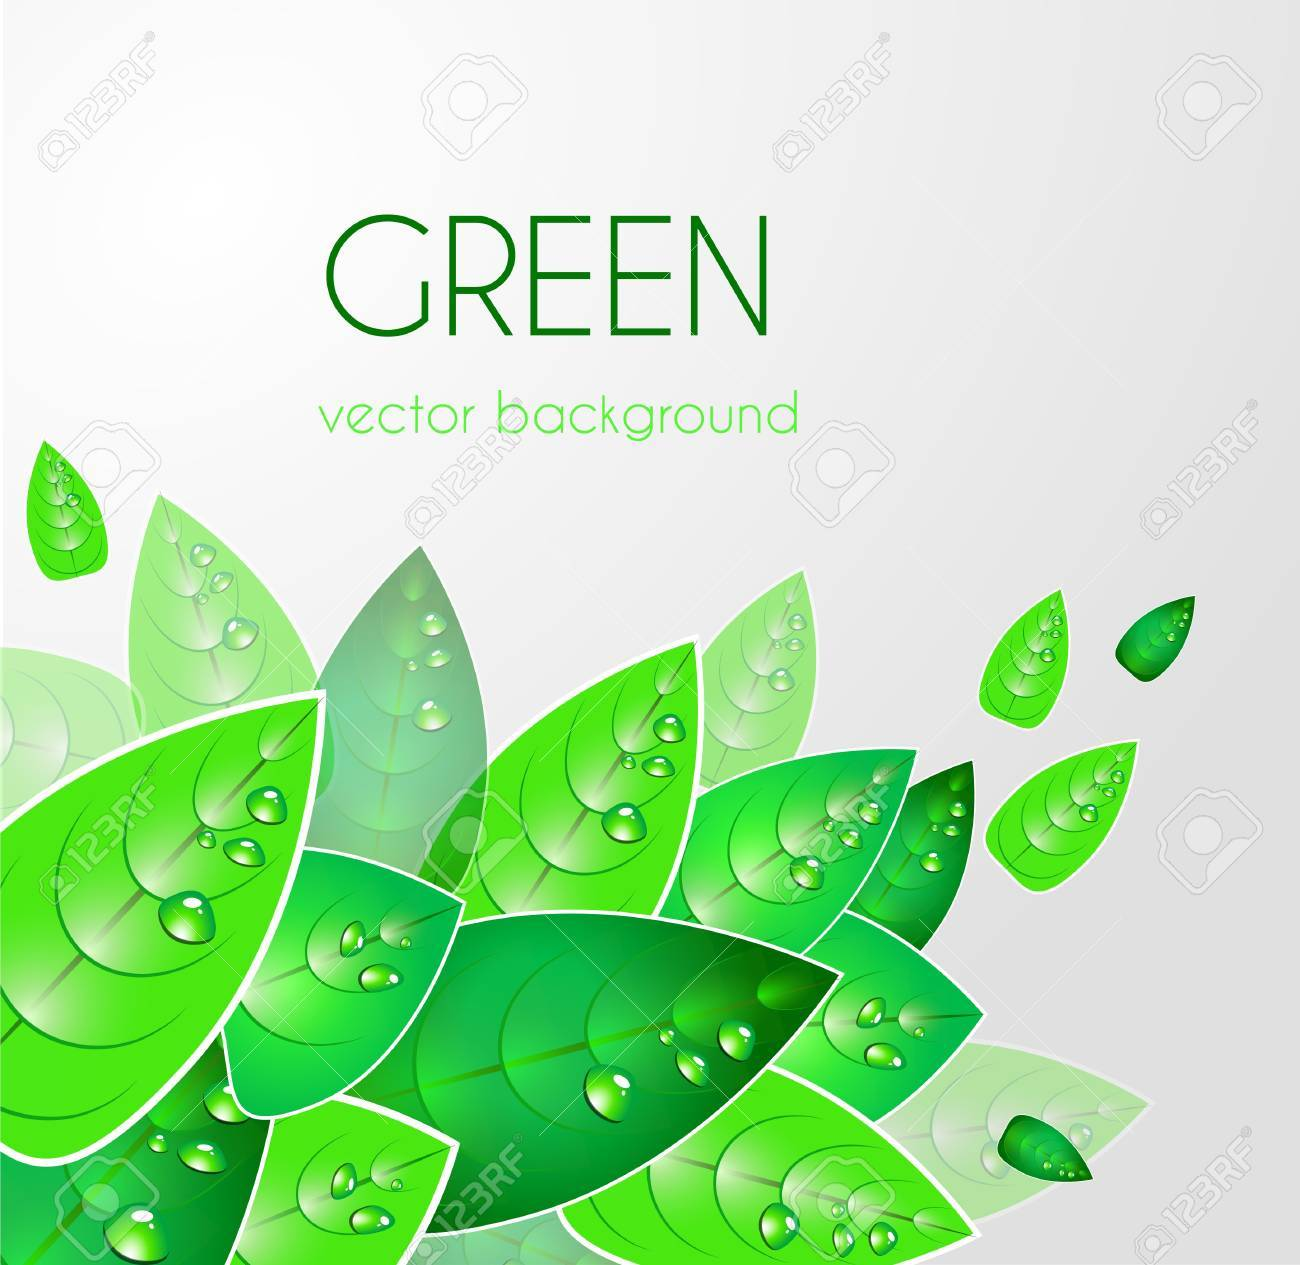 Abstract light vector  background with green leafs Stock Vector - 10002989